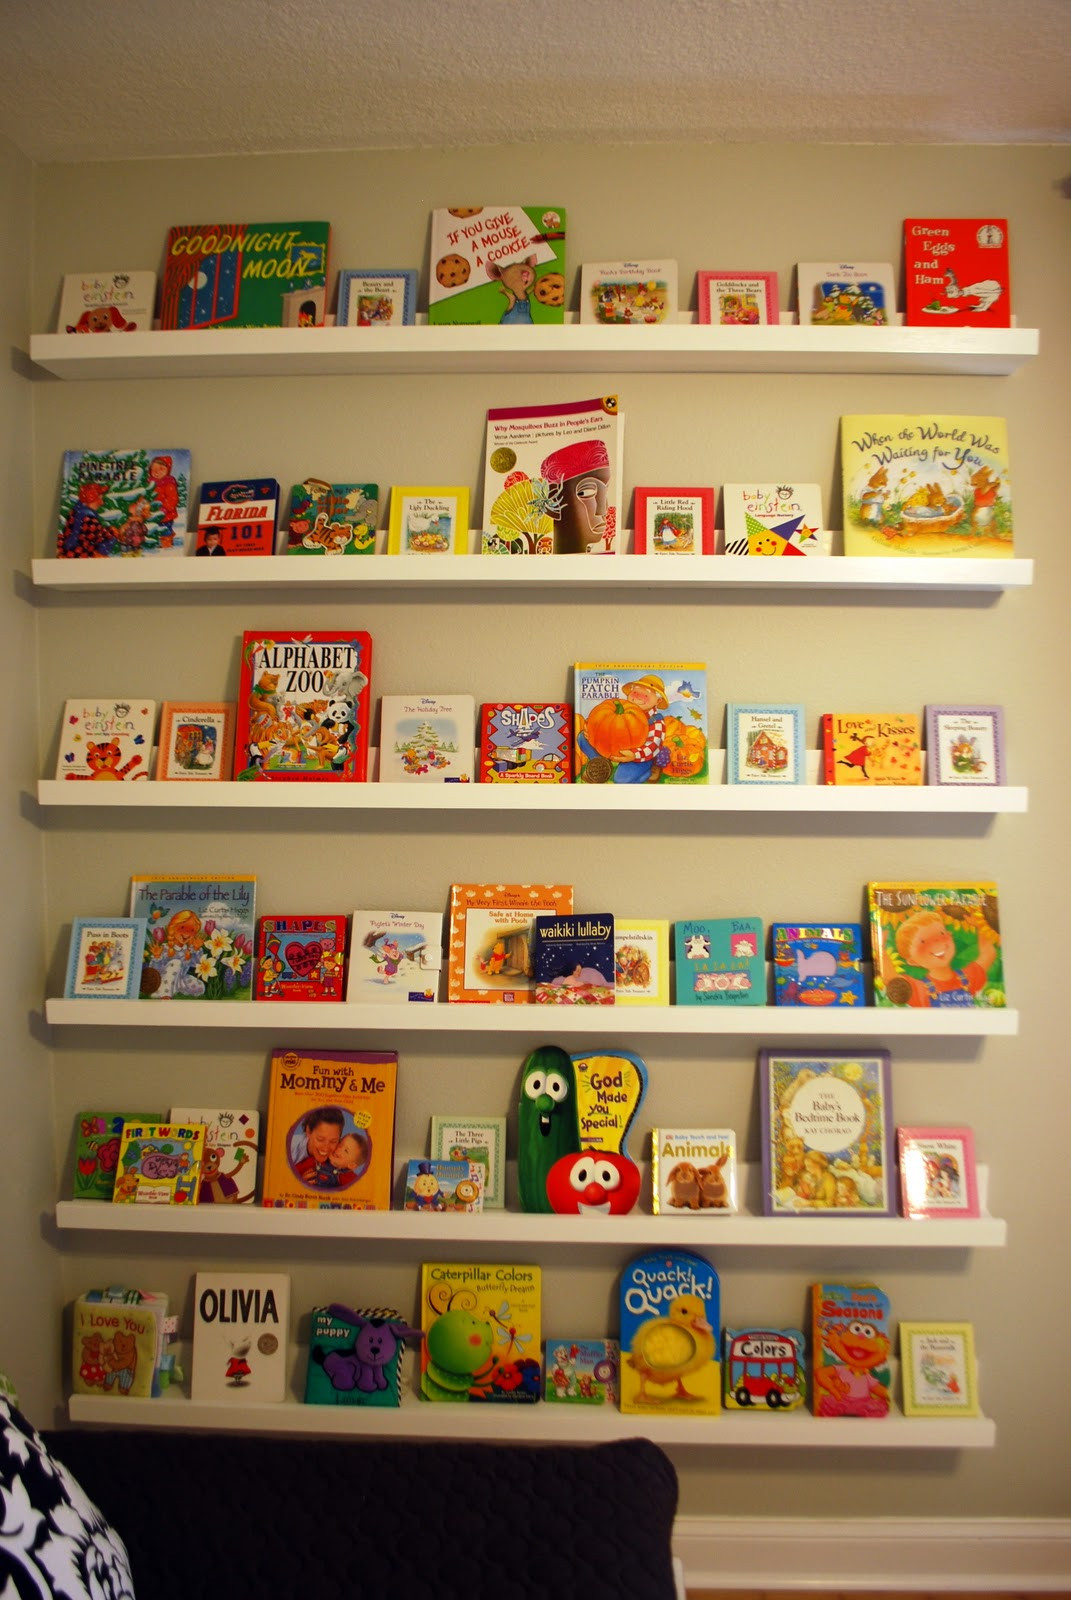 Best ideas about DIY Bookshelves For Kids . Save or Pin Ana White Now.